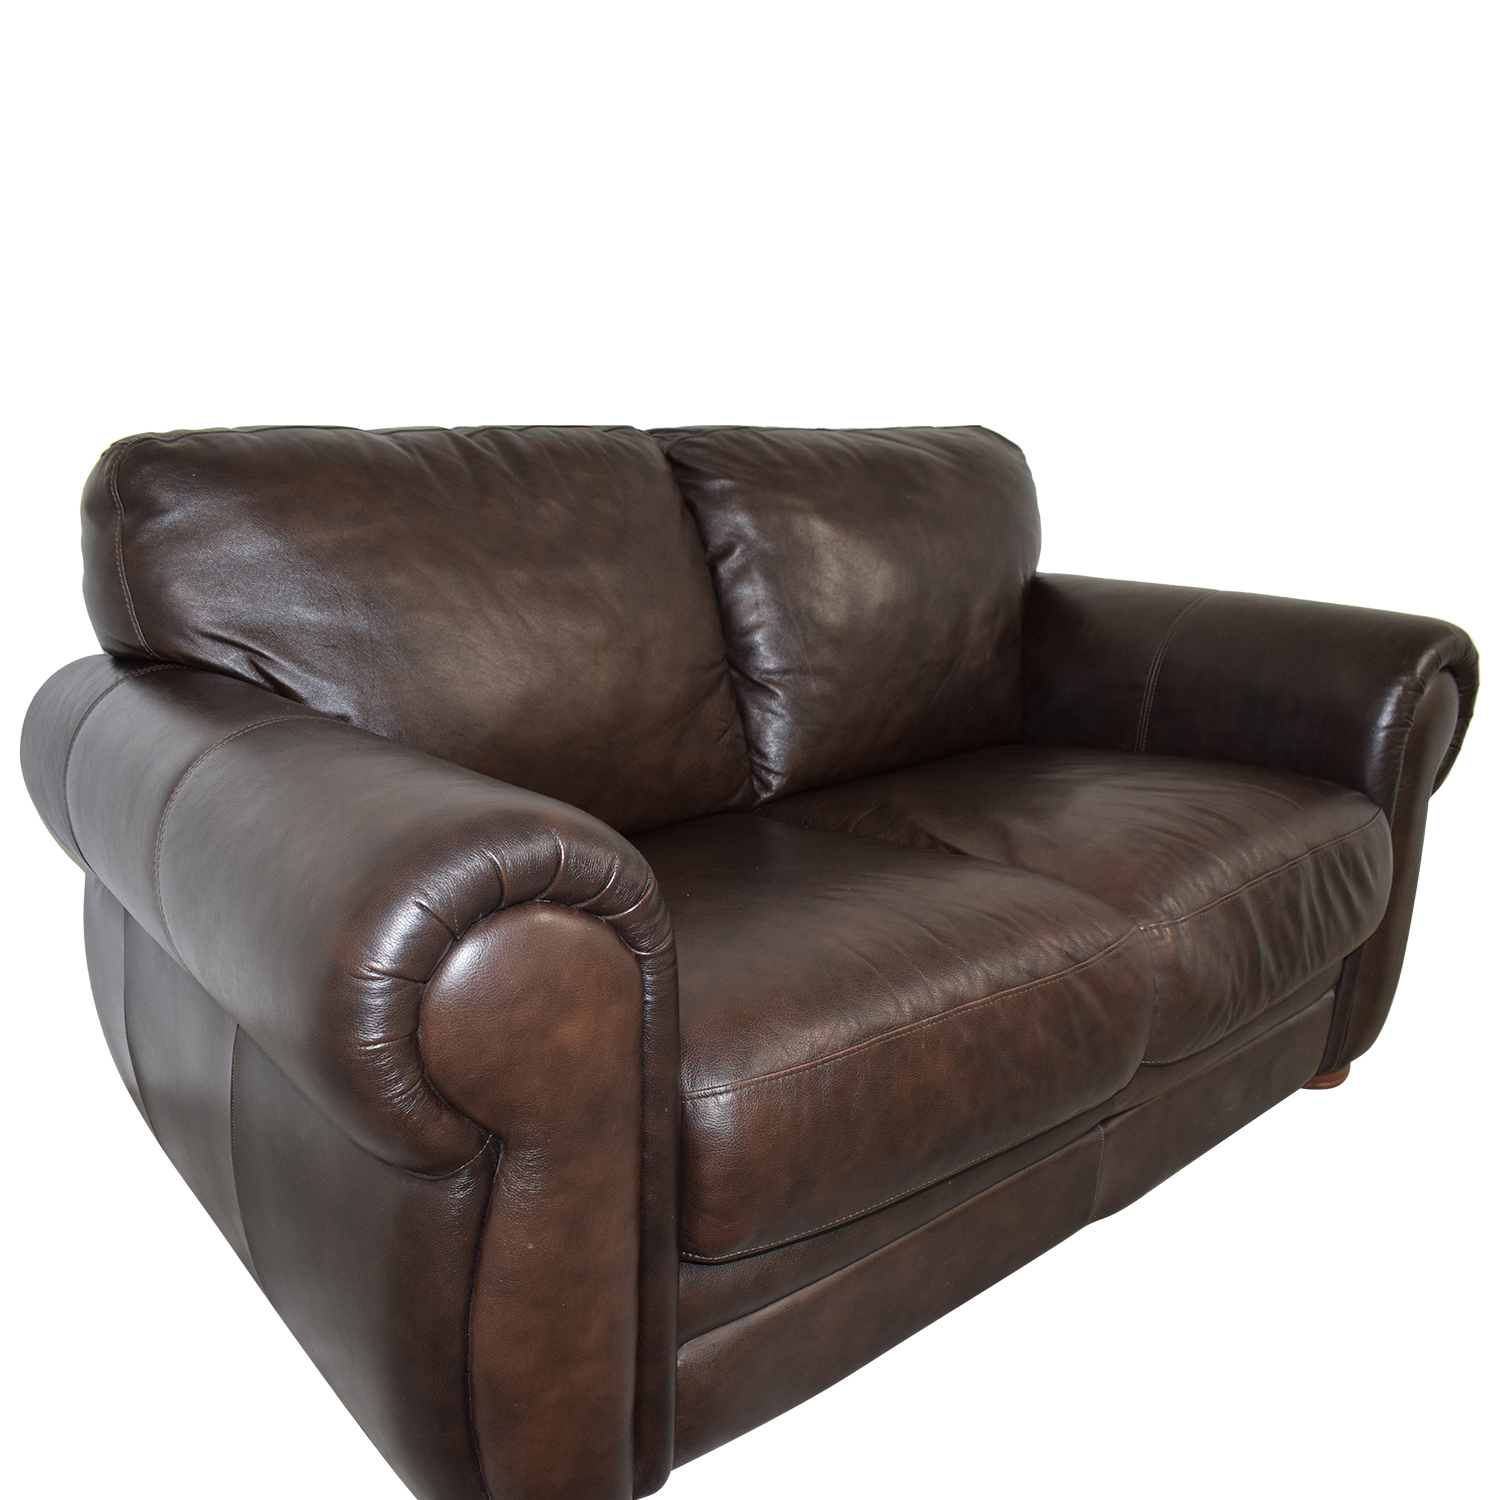 shop Raymour & Flanigan Brown Leather Two-Cushion Sofa Raymour & Flanigan Loveseats